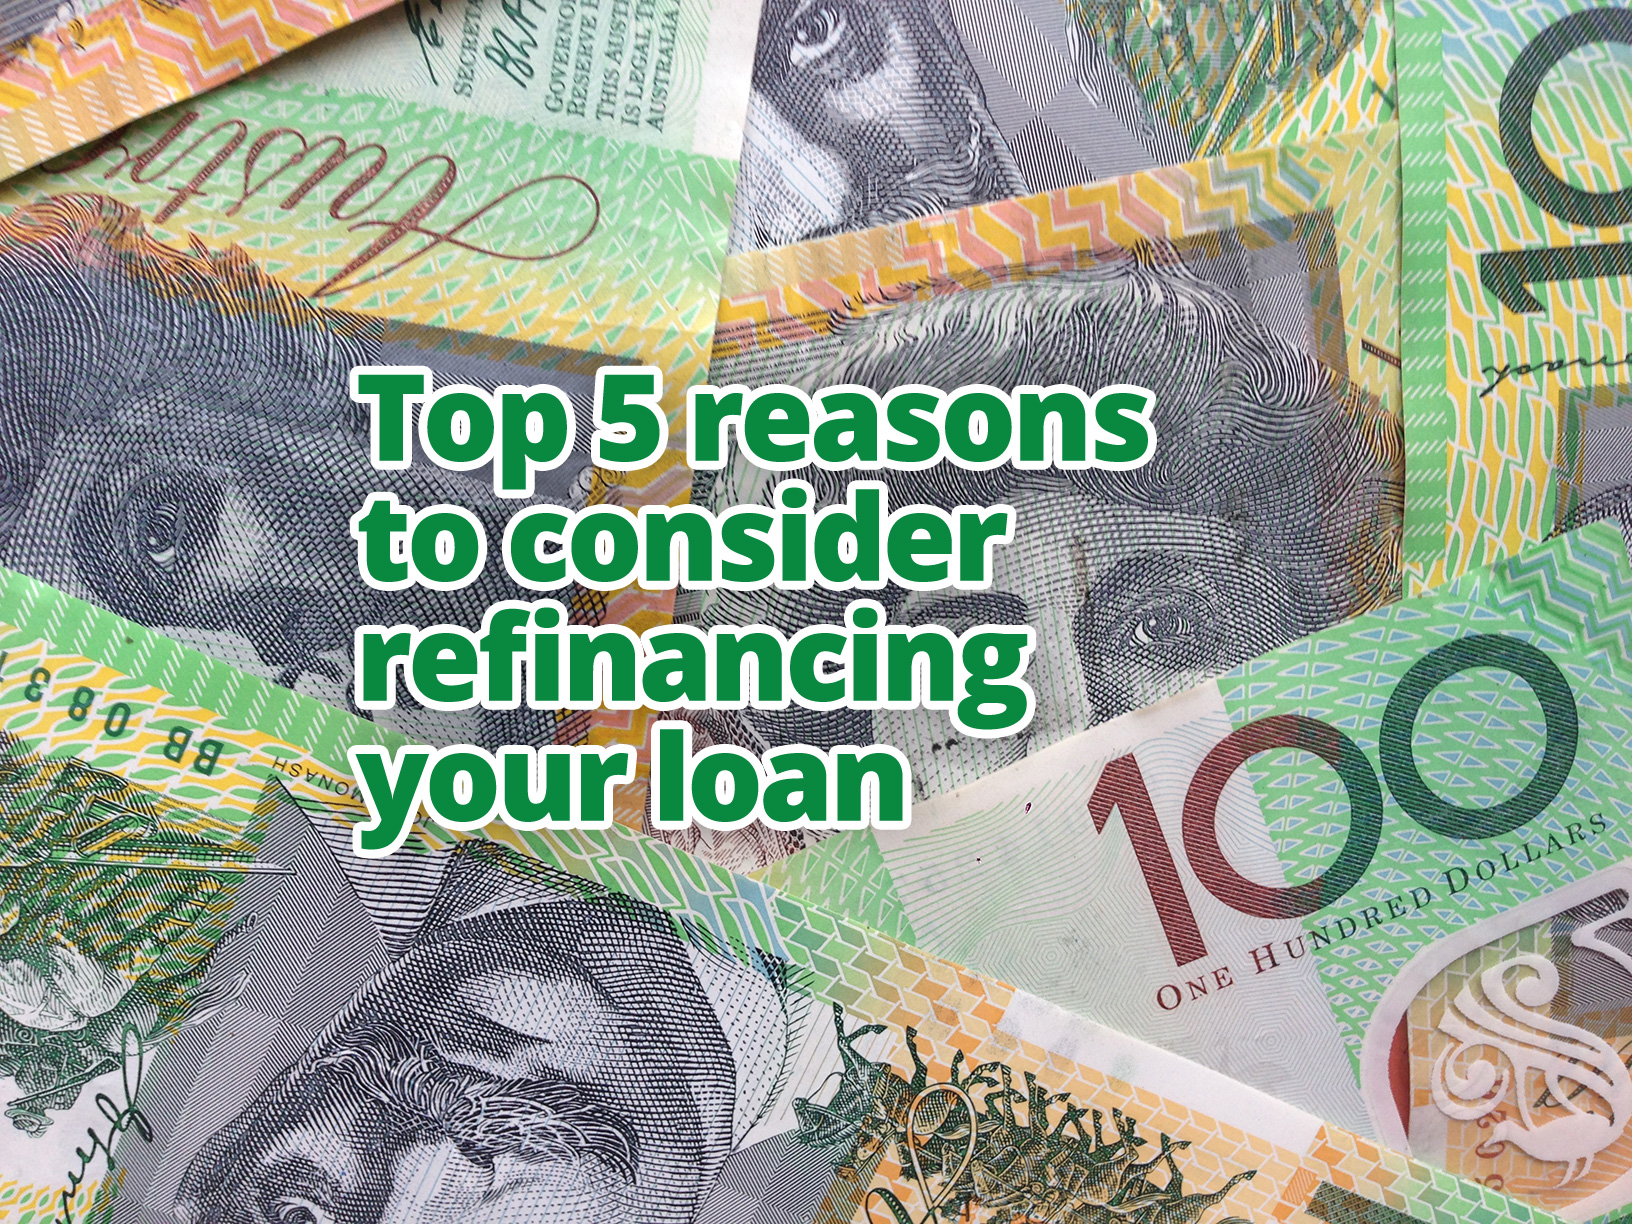 Top 5 reasons to consider refinancing your loan